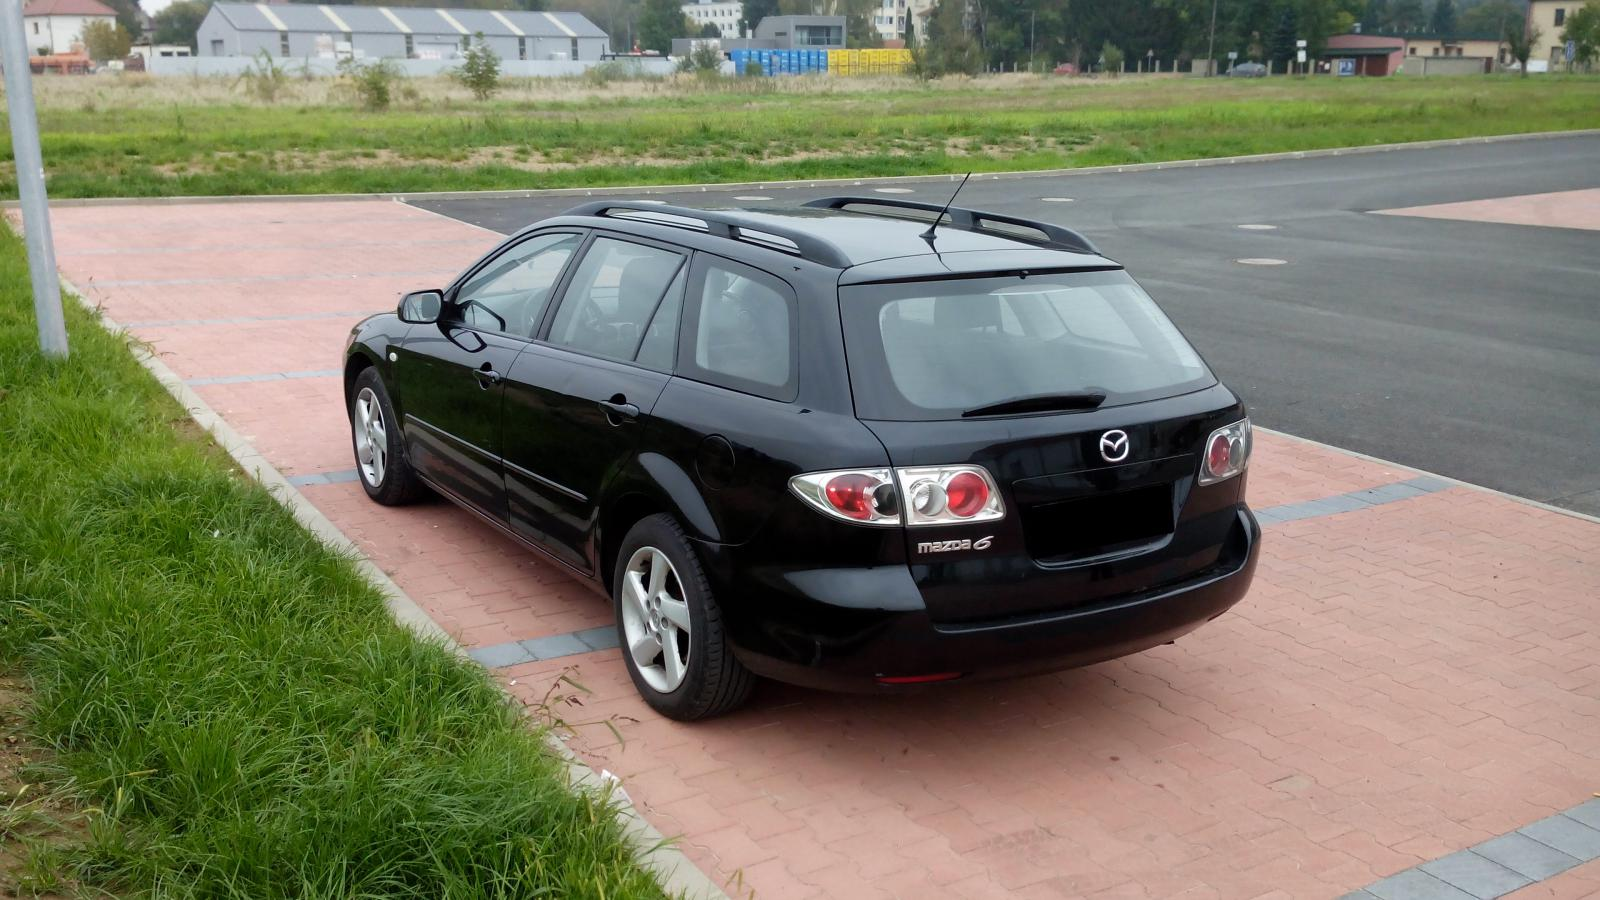 2004 mazda 6 gg gy 1 generace 2 0 diesel 100 kw 310 nm. Black Bedroom Furniture Sets. Home Design Ideas